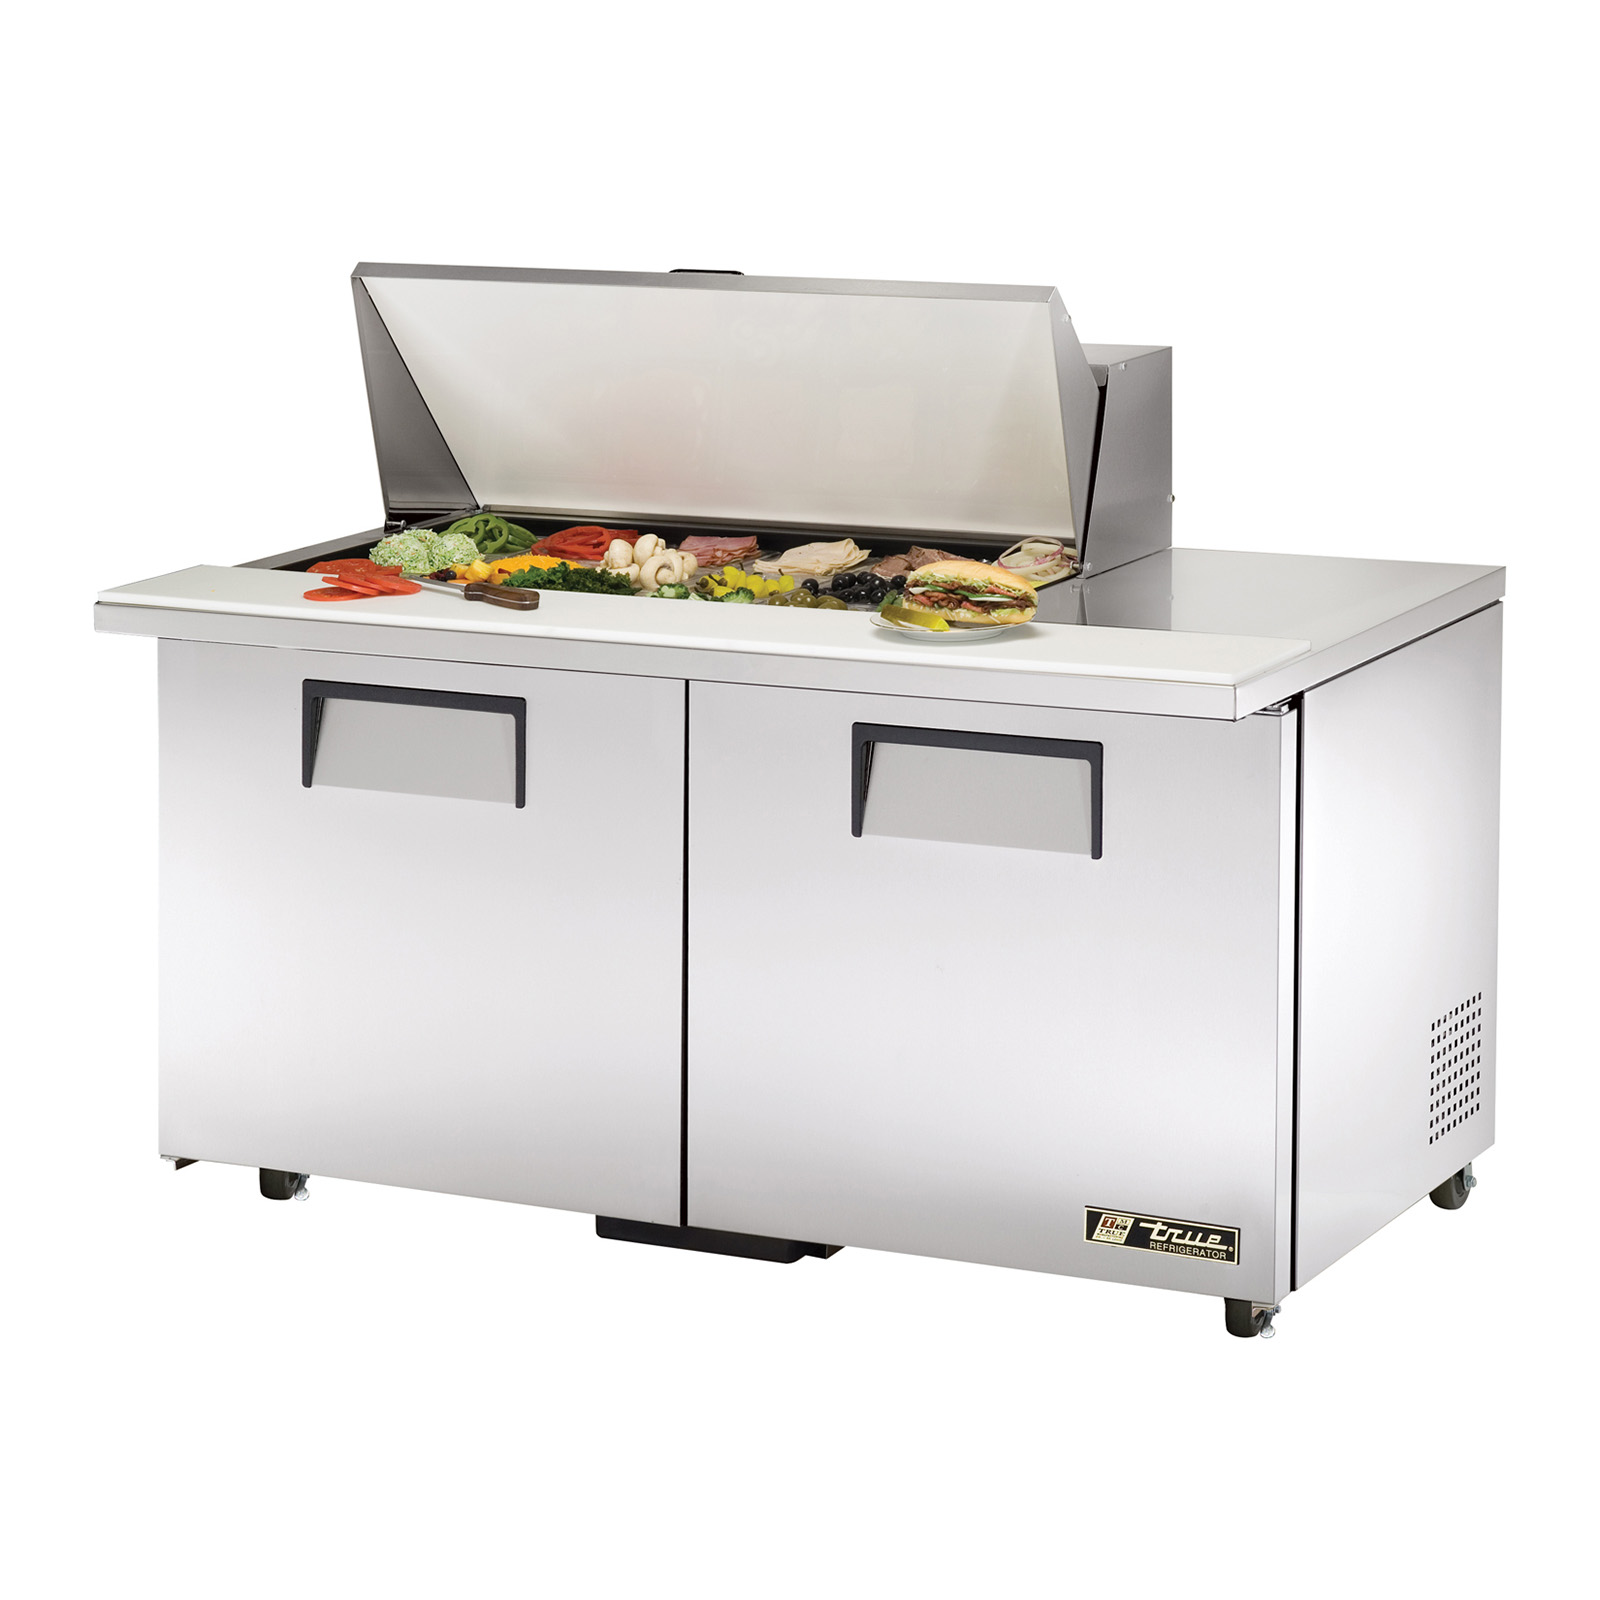 TSSU-60-18M-B-ADA True - ADA Compliant Mega Top Sandwich/Salad Unit (18) 1/6 size (4